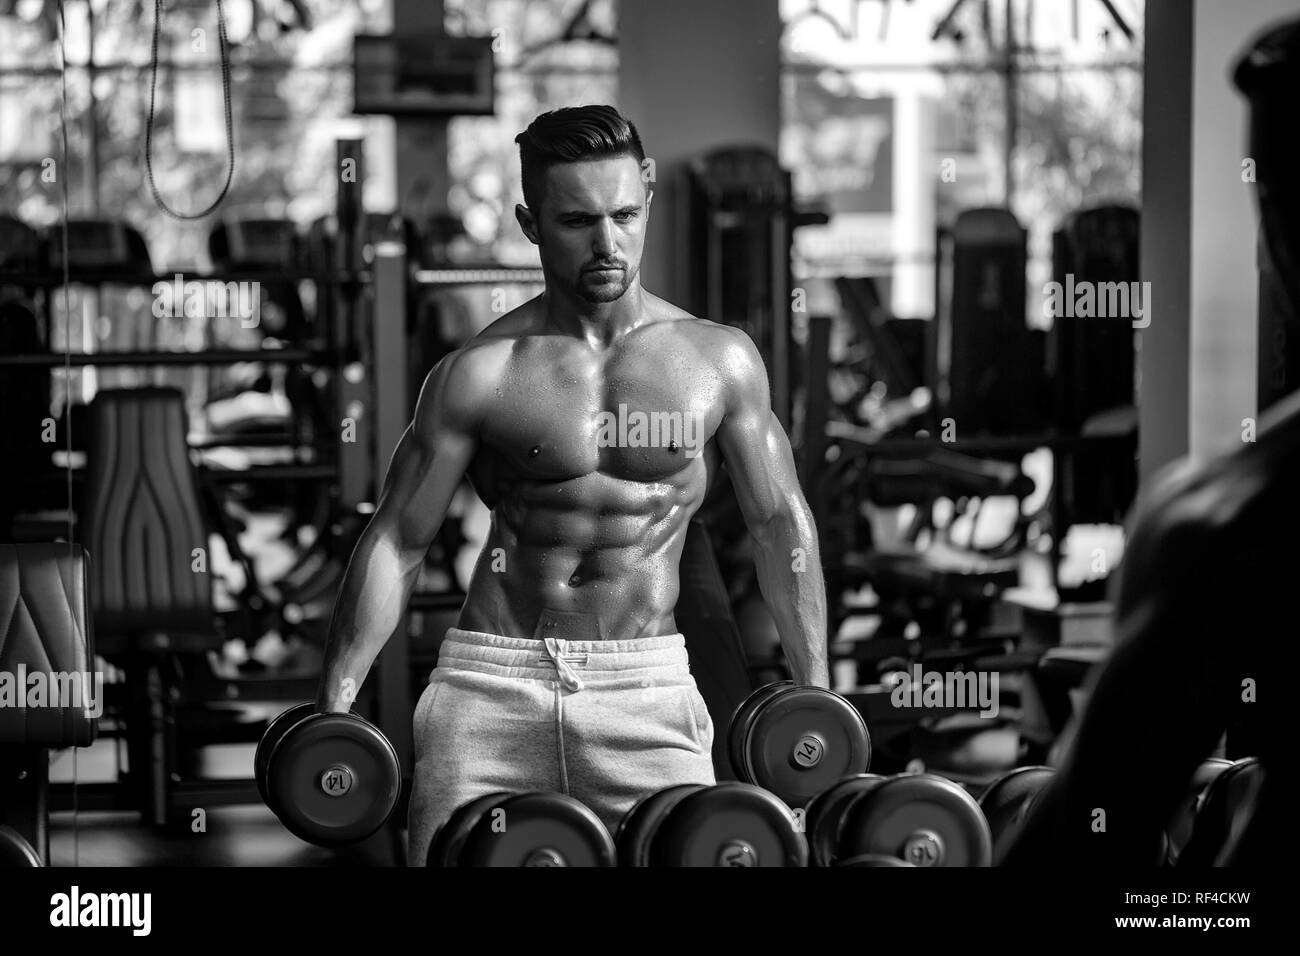 muscular man with dumbbell - Stock Image